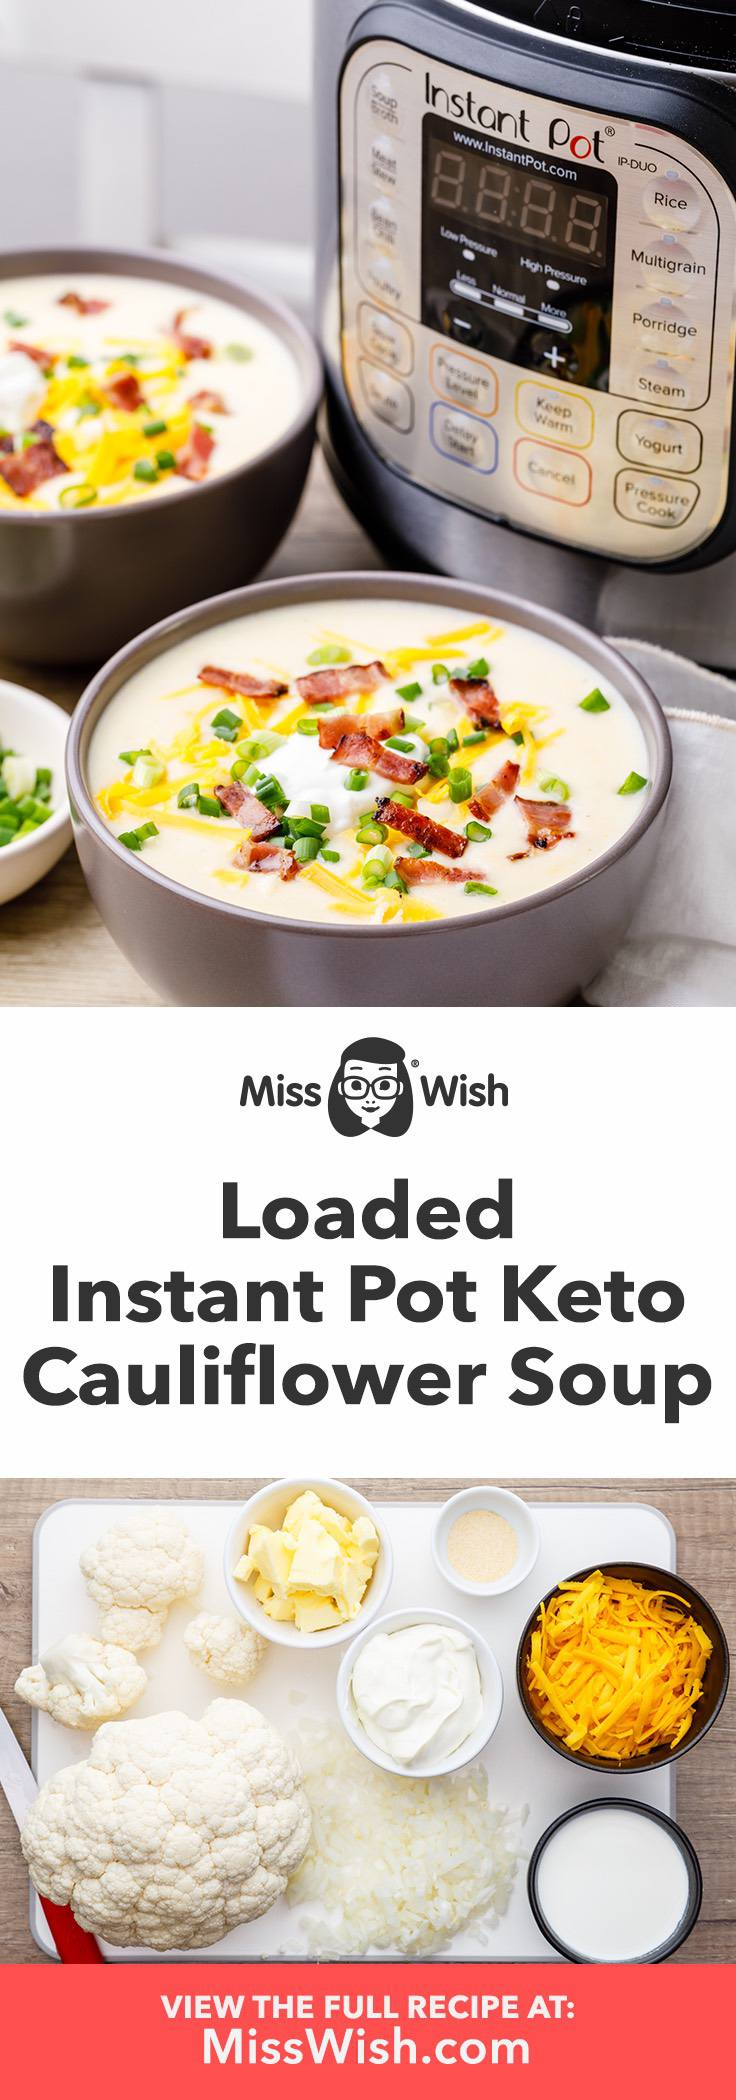 Loaded Instant Pot Keto Cauliflower Soup